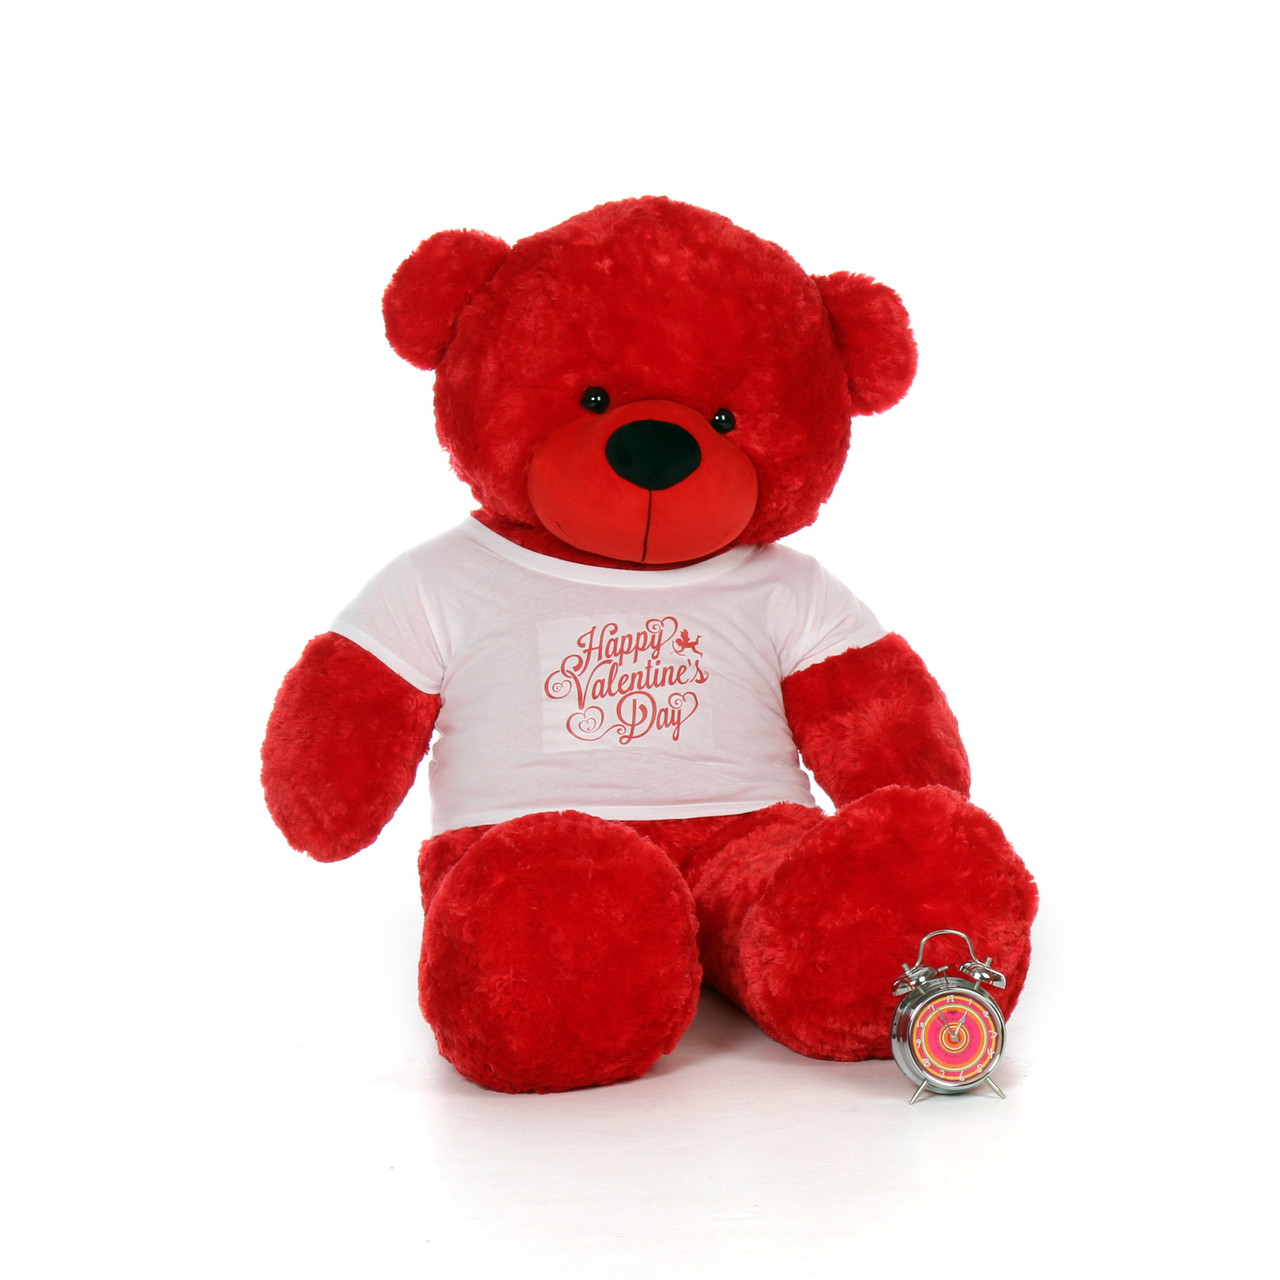 60in bitsy cuddles giant red teddy bear in happy valentines day shirt - Giant Teddy Bear For Valentines Day